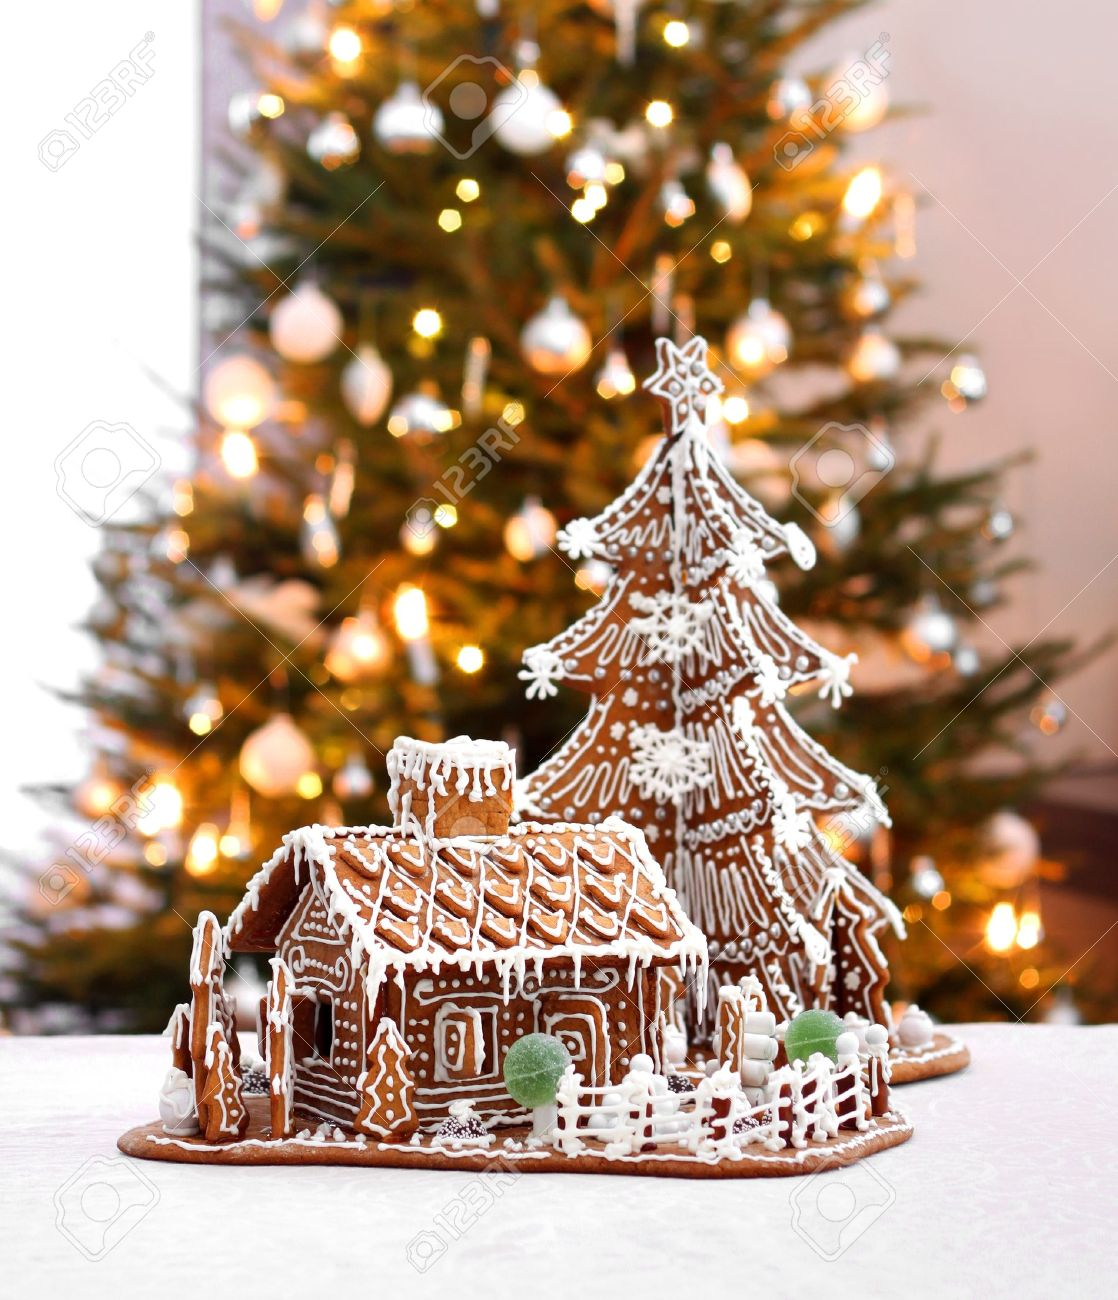 Gingerbread Christmas Tree.Gingerbread Cottage House And Christmas Tree Home Interior Background